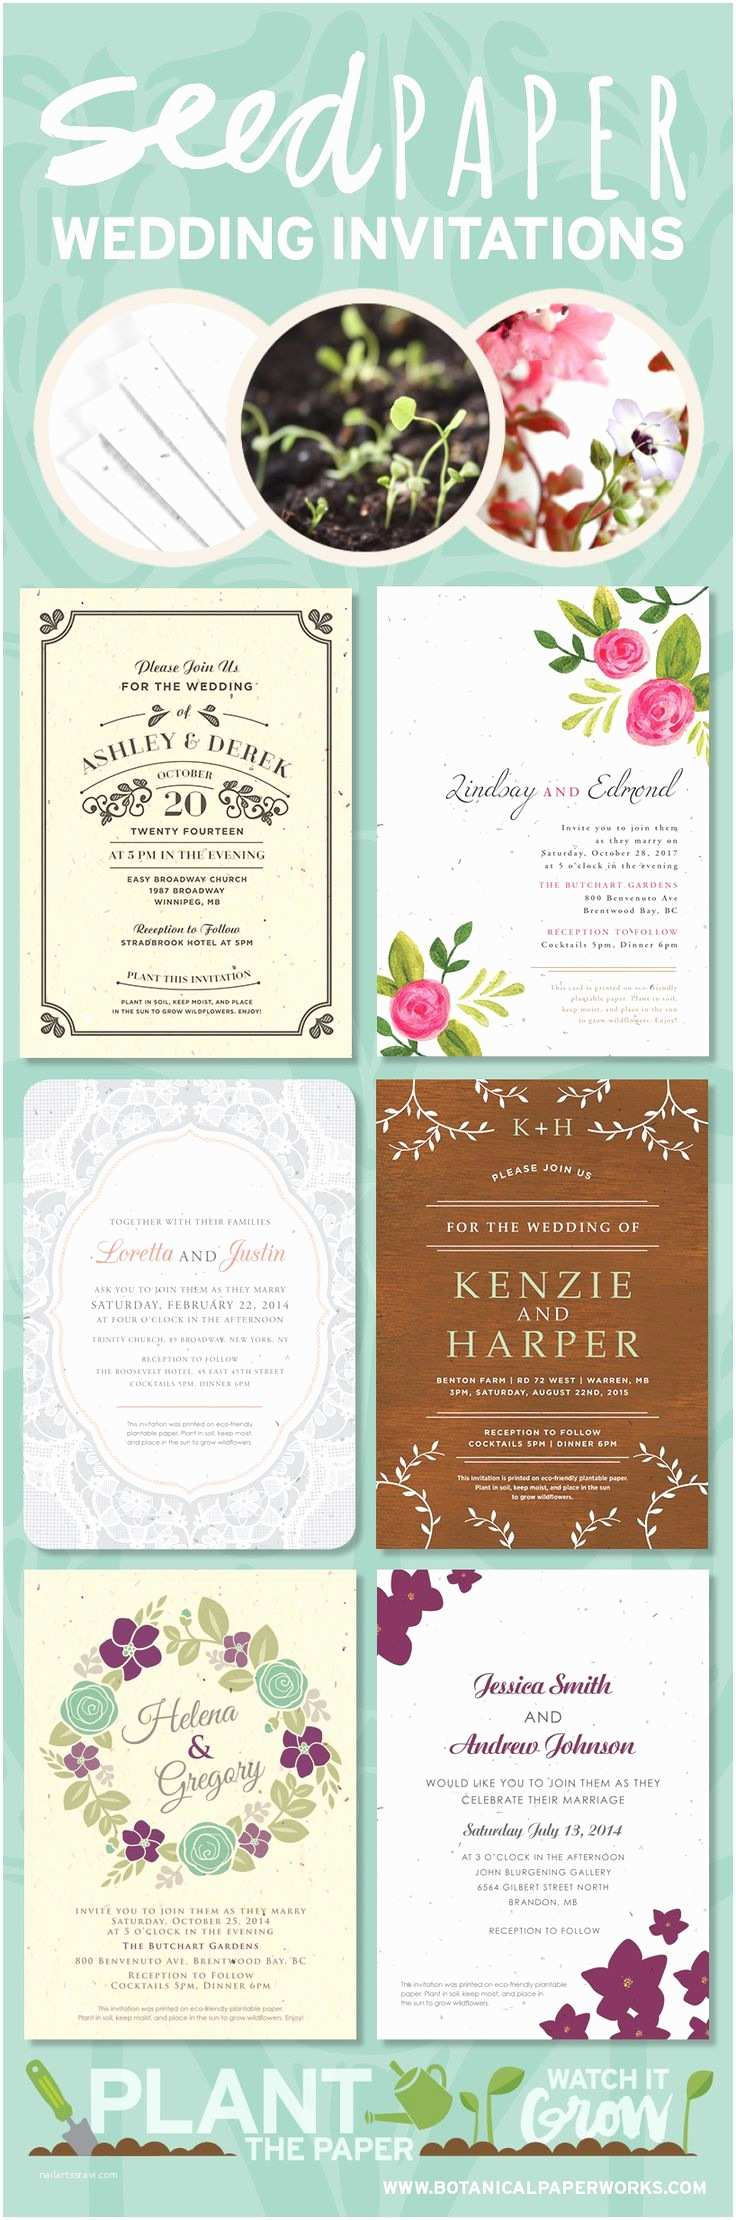 Seed Wedding Invitations 17 Best Images About Stationery On